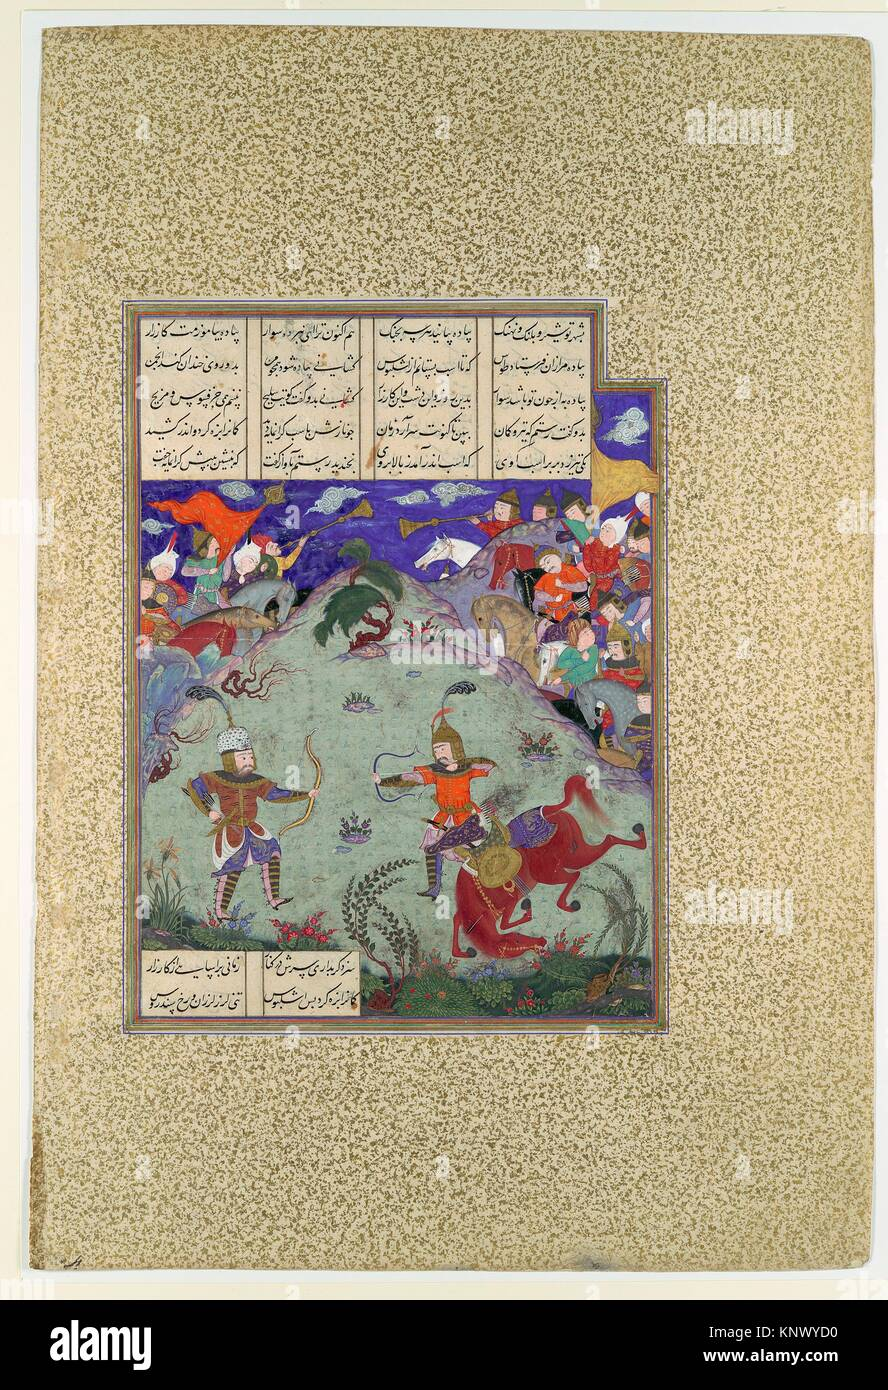 The Combat of Rustam and Ashkabus, Folio 268v from the Shahnama (Book of Kings) of Shah Tahmasp. Author: Abu'l - Stock Image